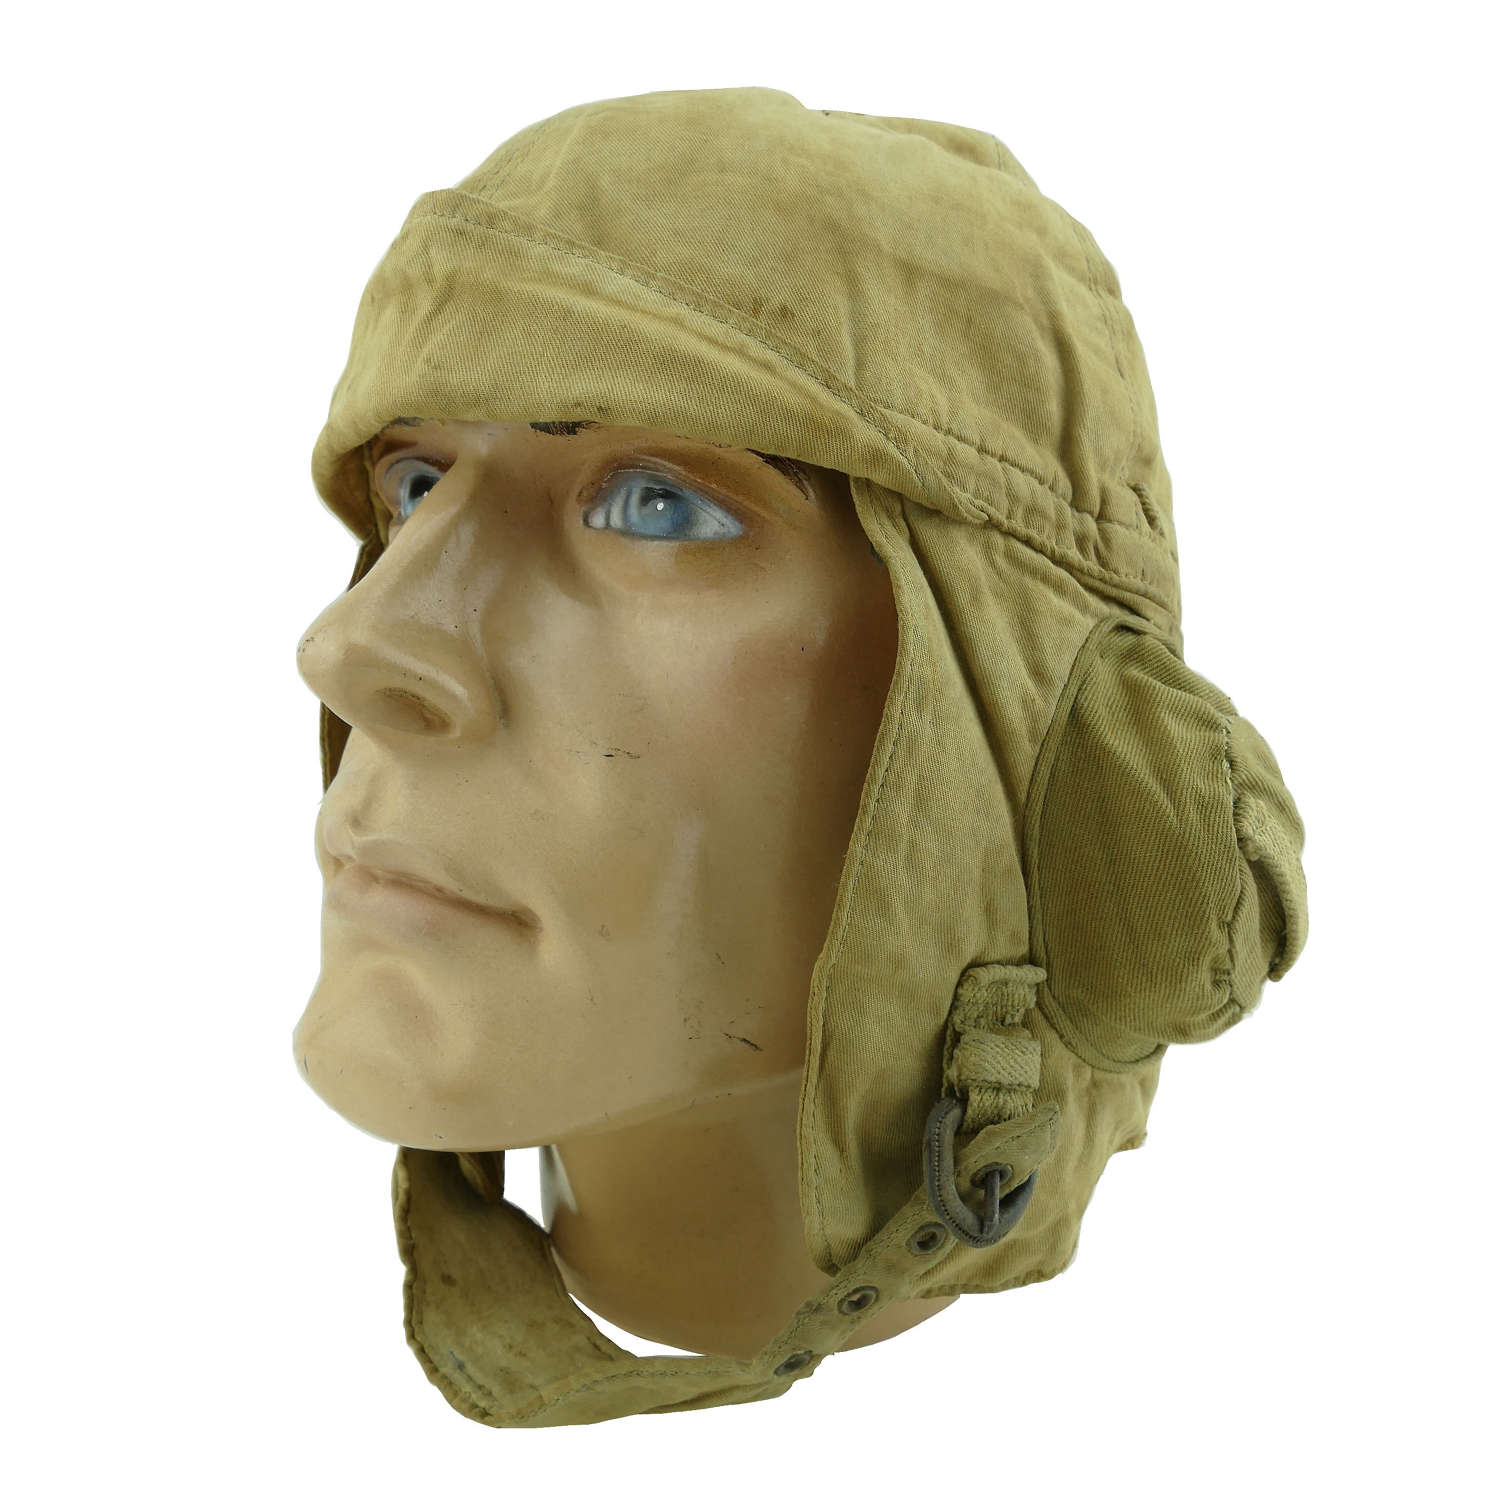 Early cloth flying helmet